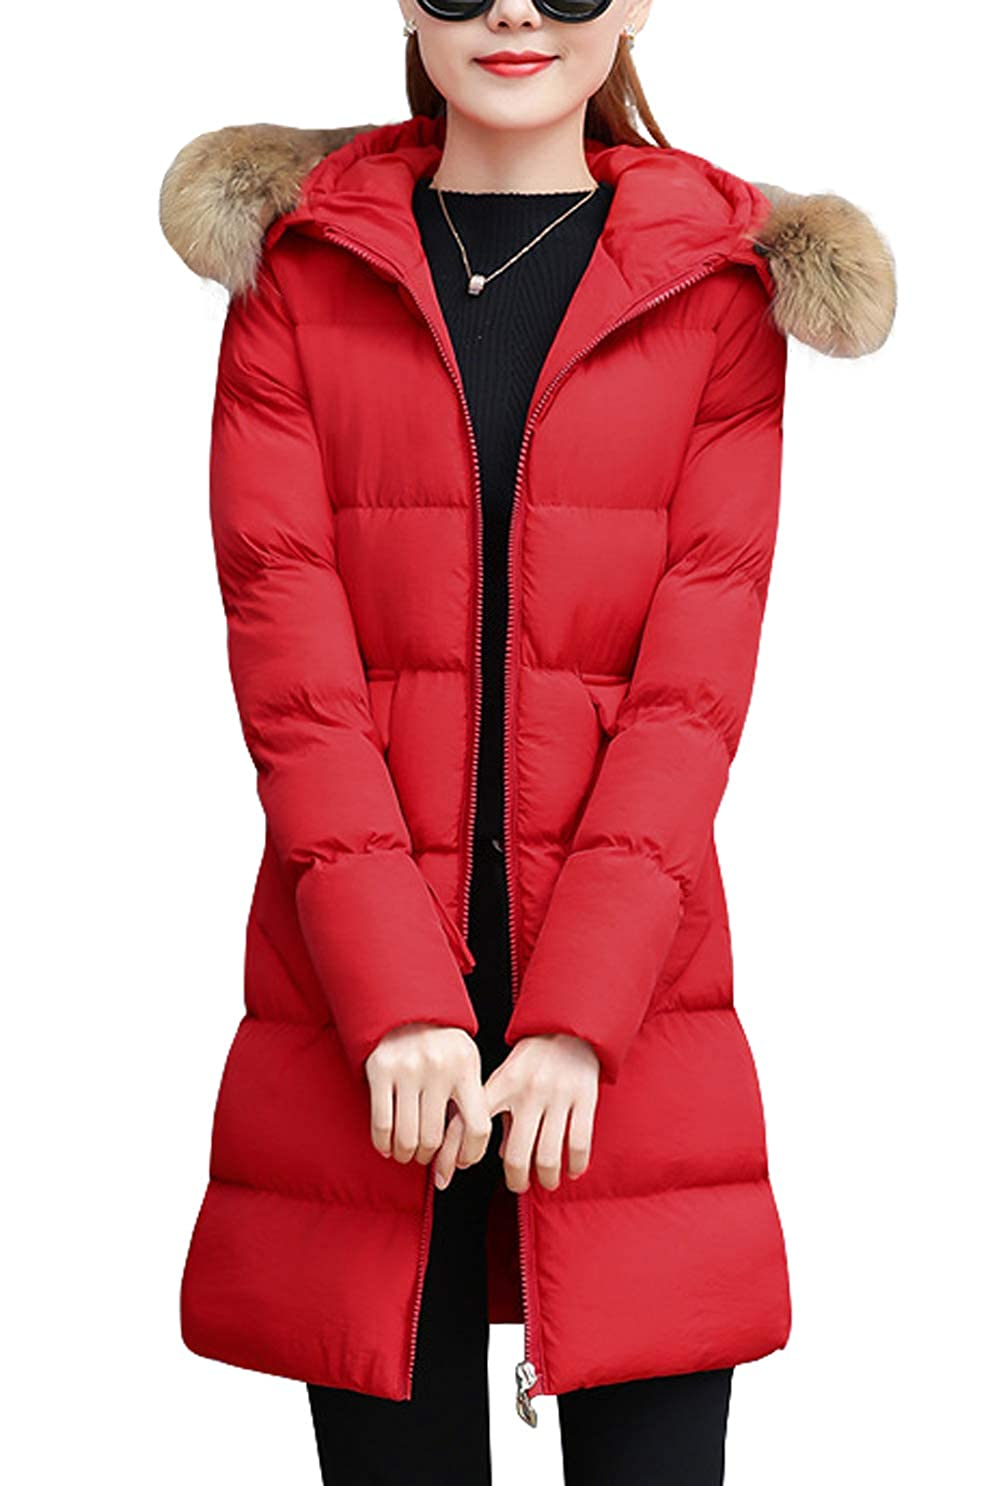 chouyatou Damen Winterjacke Winddicht Fellkapuze Mid Long Parka Daunen Alternative Mantel